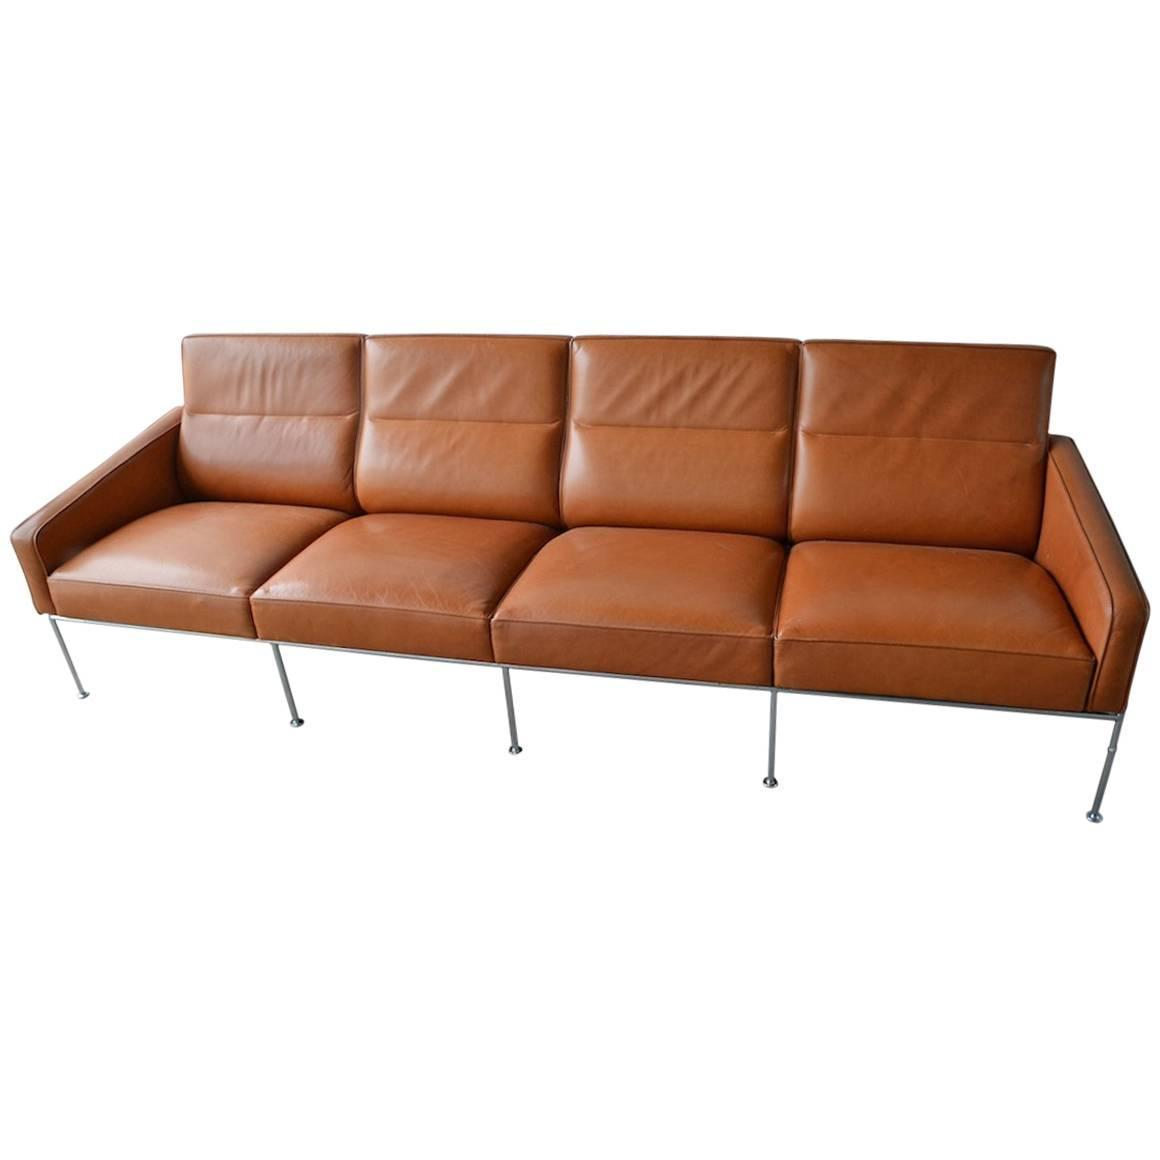 rare leather arne jacobsen series 3300 four seat sofa for sale at 1stdibs. Black Bedroom Furniture Sets. Home Design Ideas